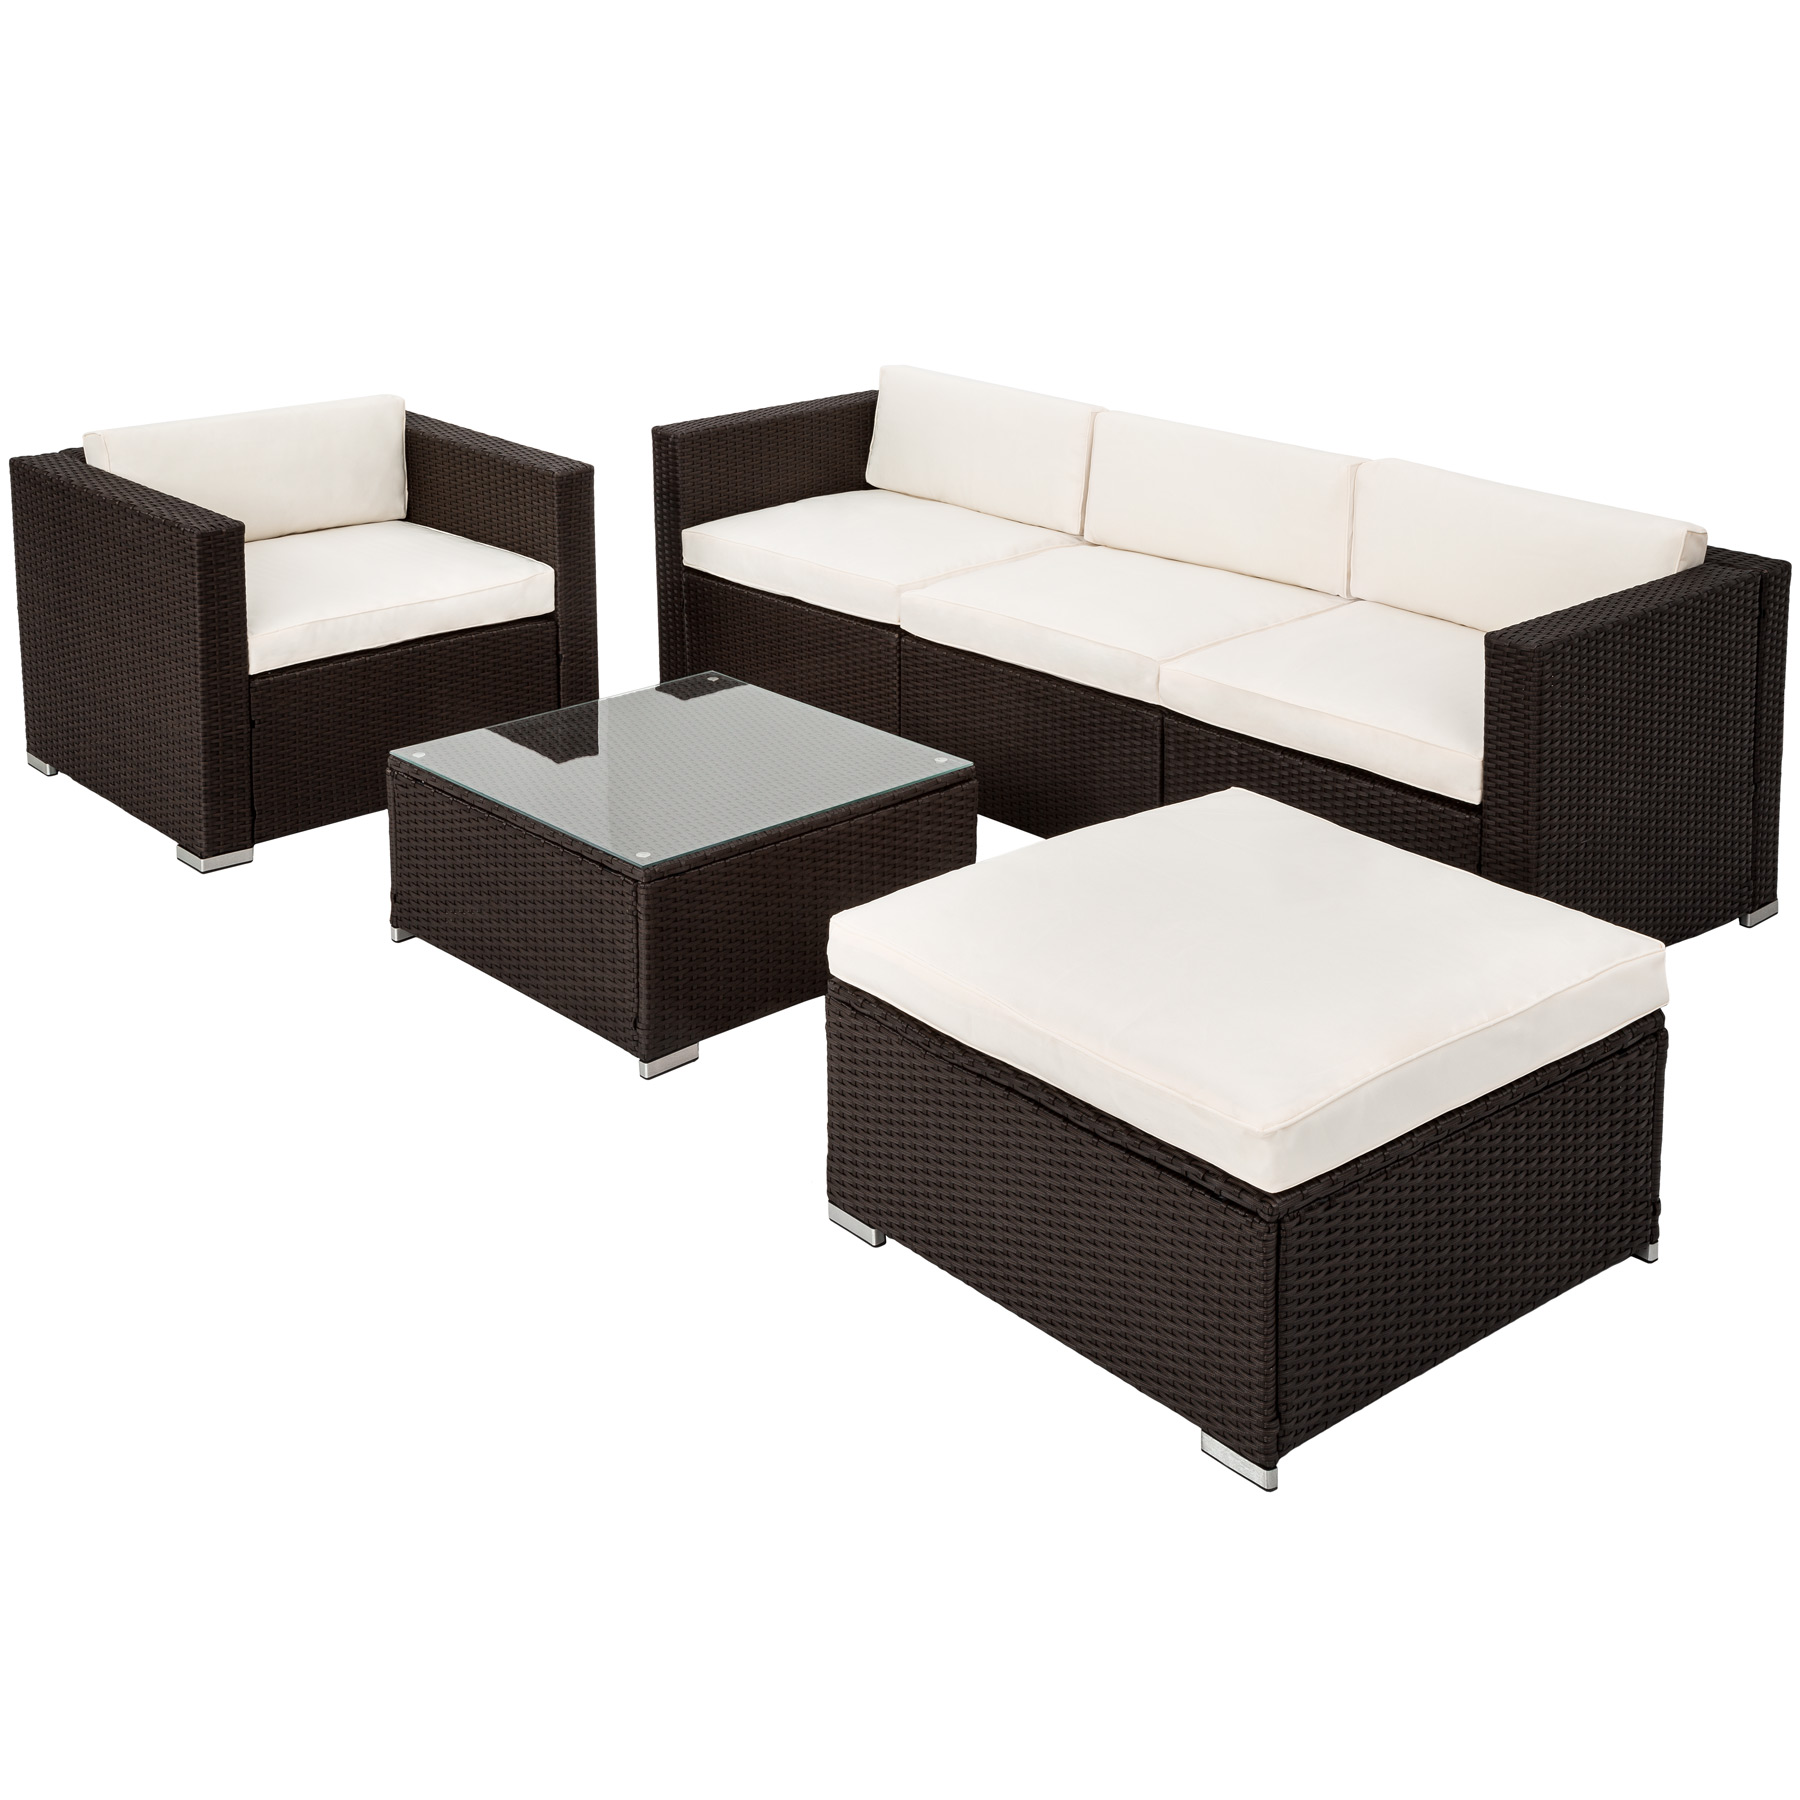 Luxury aluminium rattan garden furniture sofa set wicker Most expensive outdoor furniture